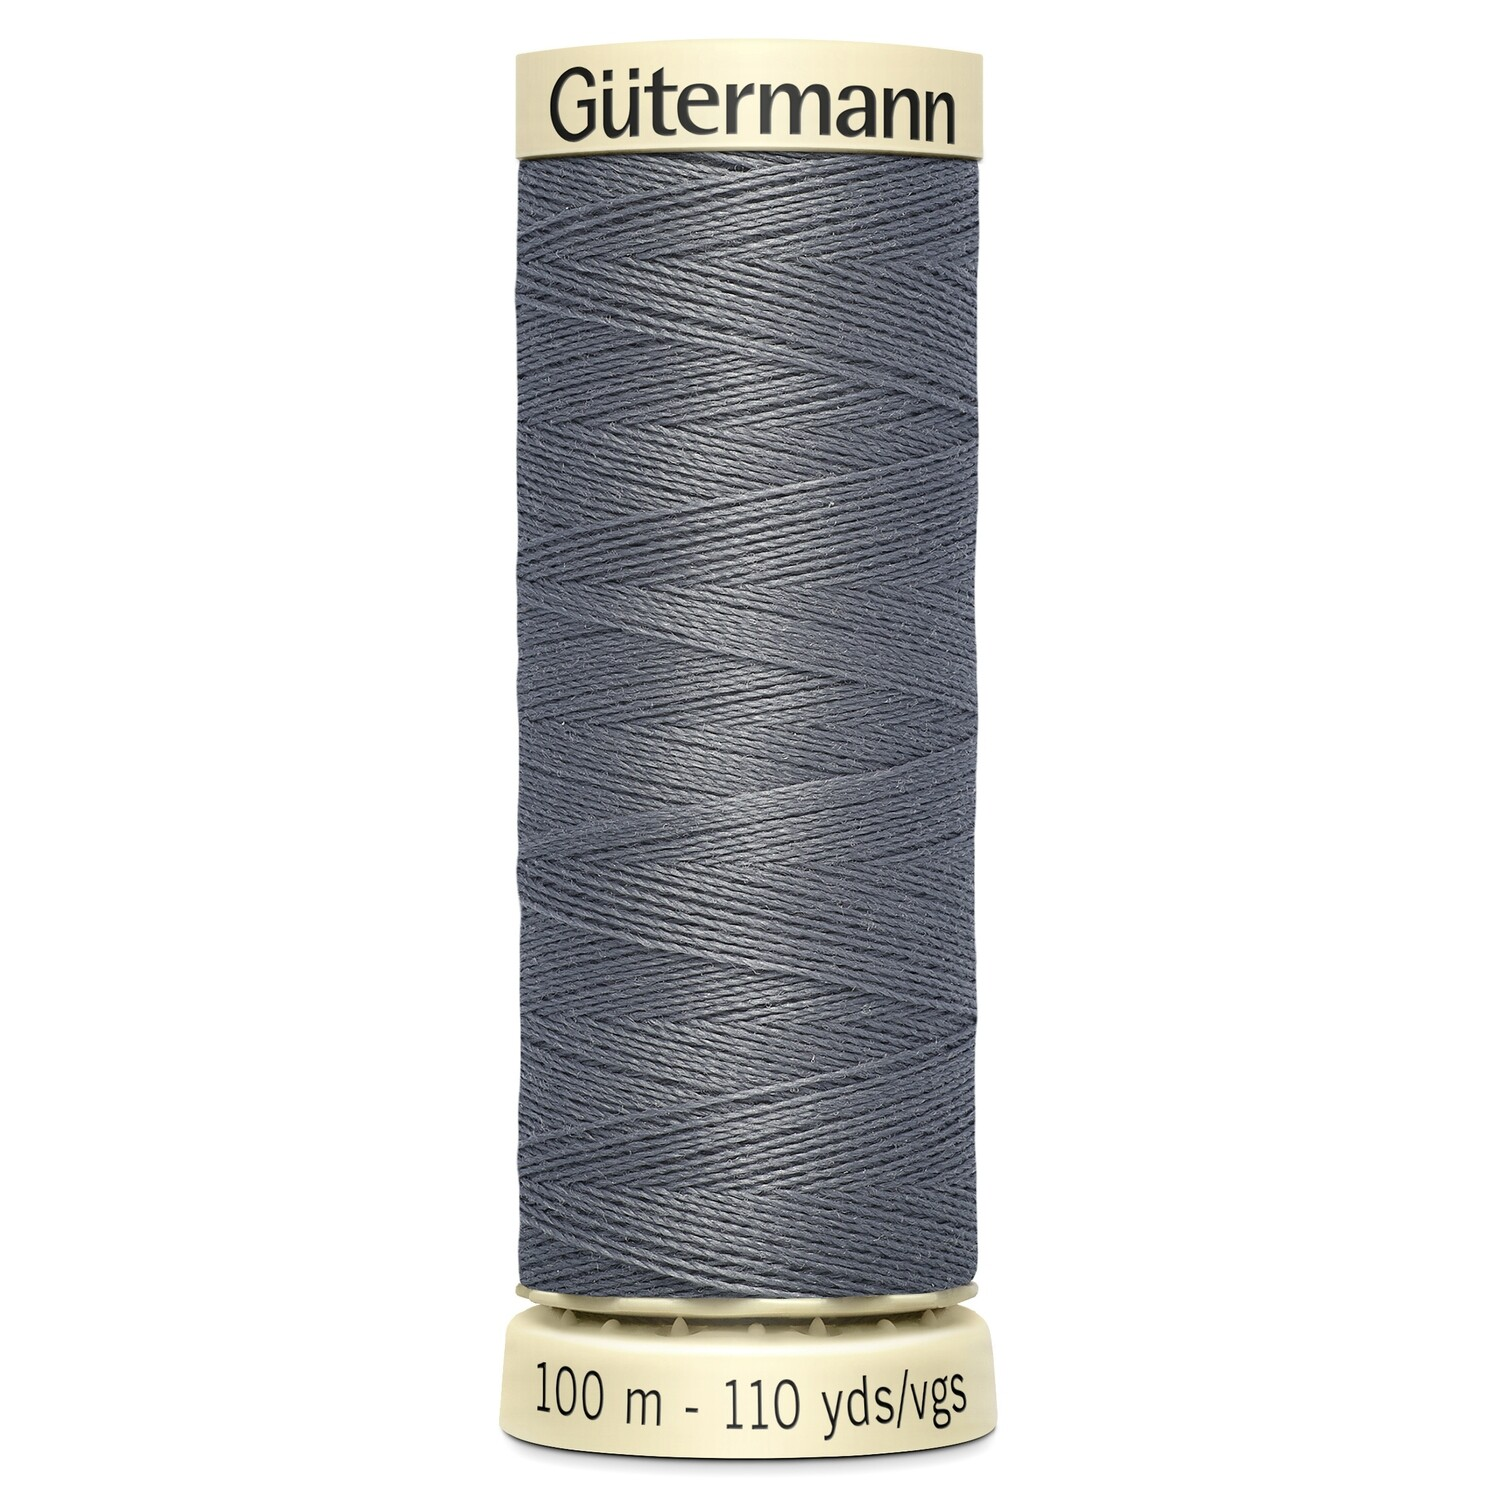 Gutermann Sew-All thread 497